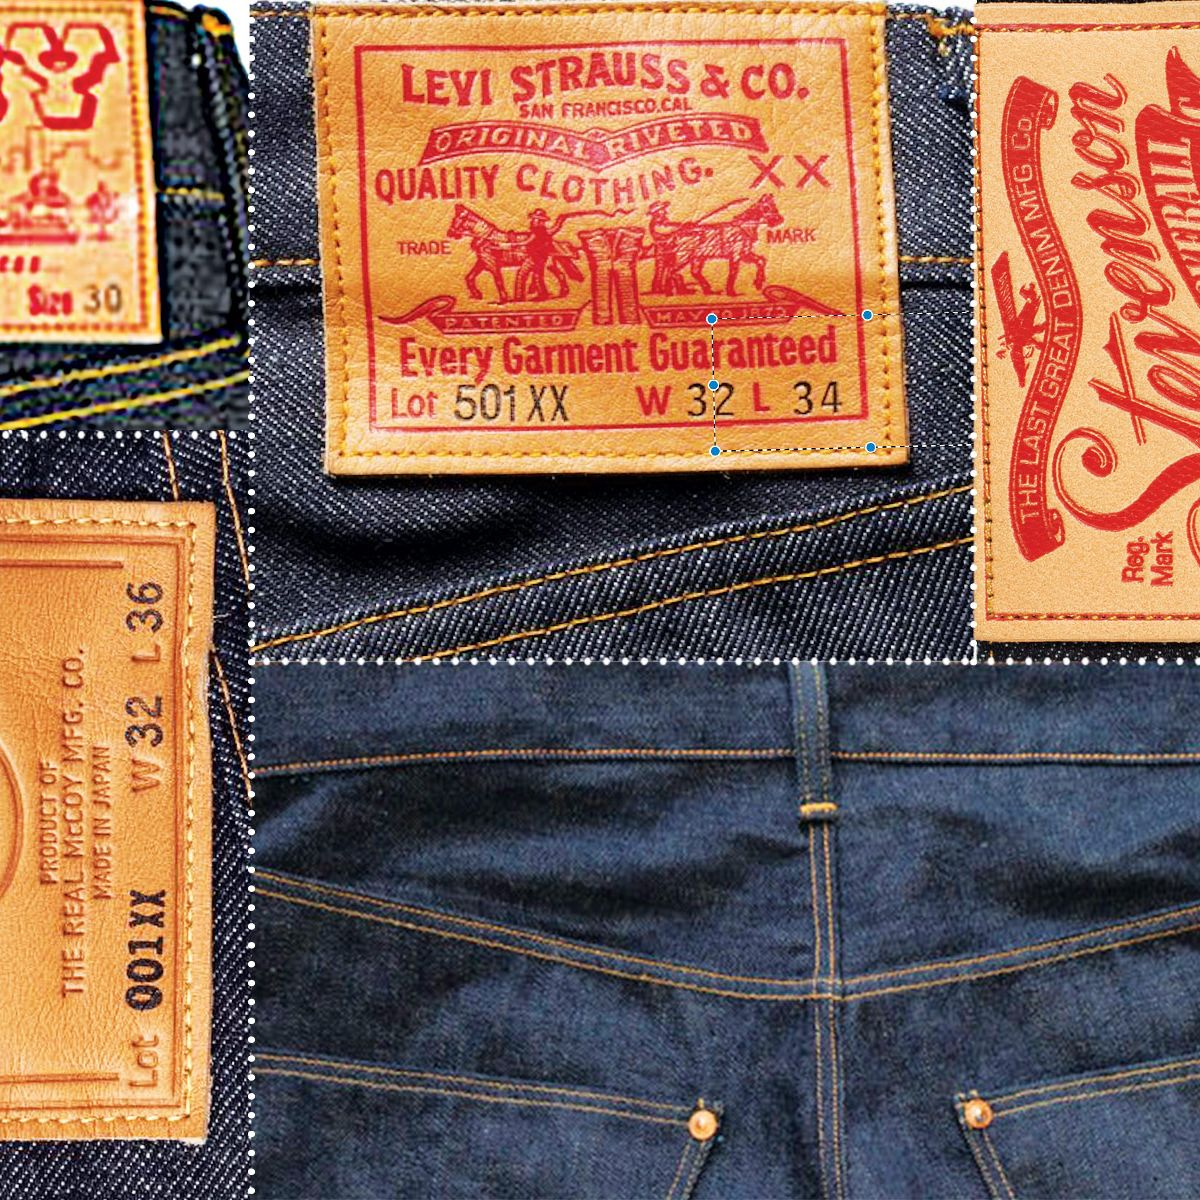 The 18 Best Raw Denim Brands For Men And Women The Strategist New York Magazine,Special Occasion Wedding Mens African Shirts Designs 2019